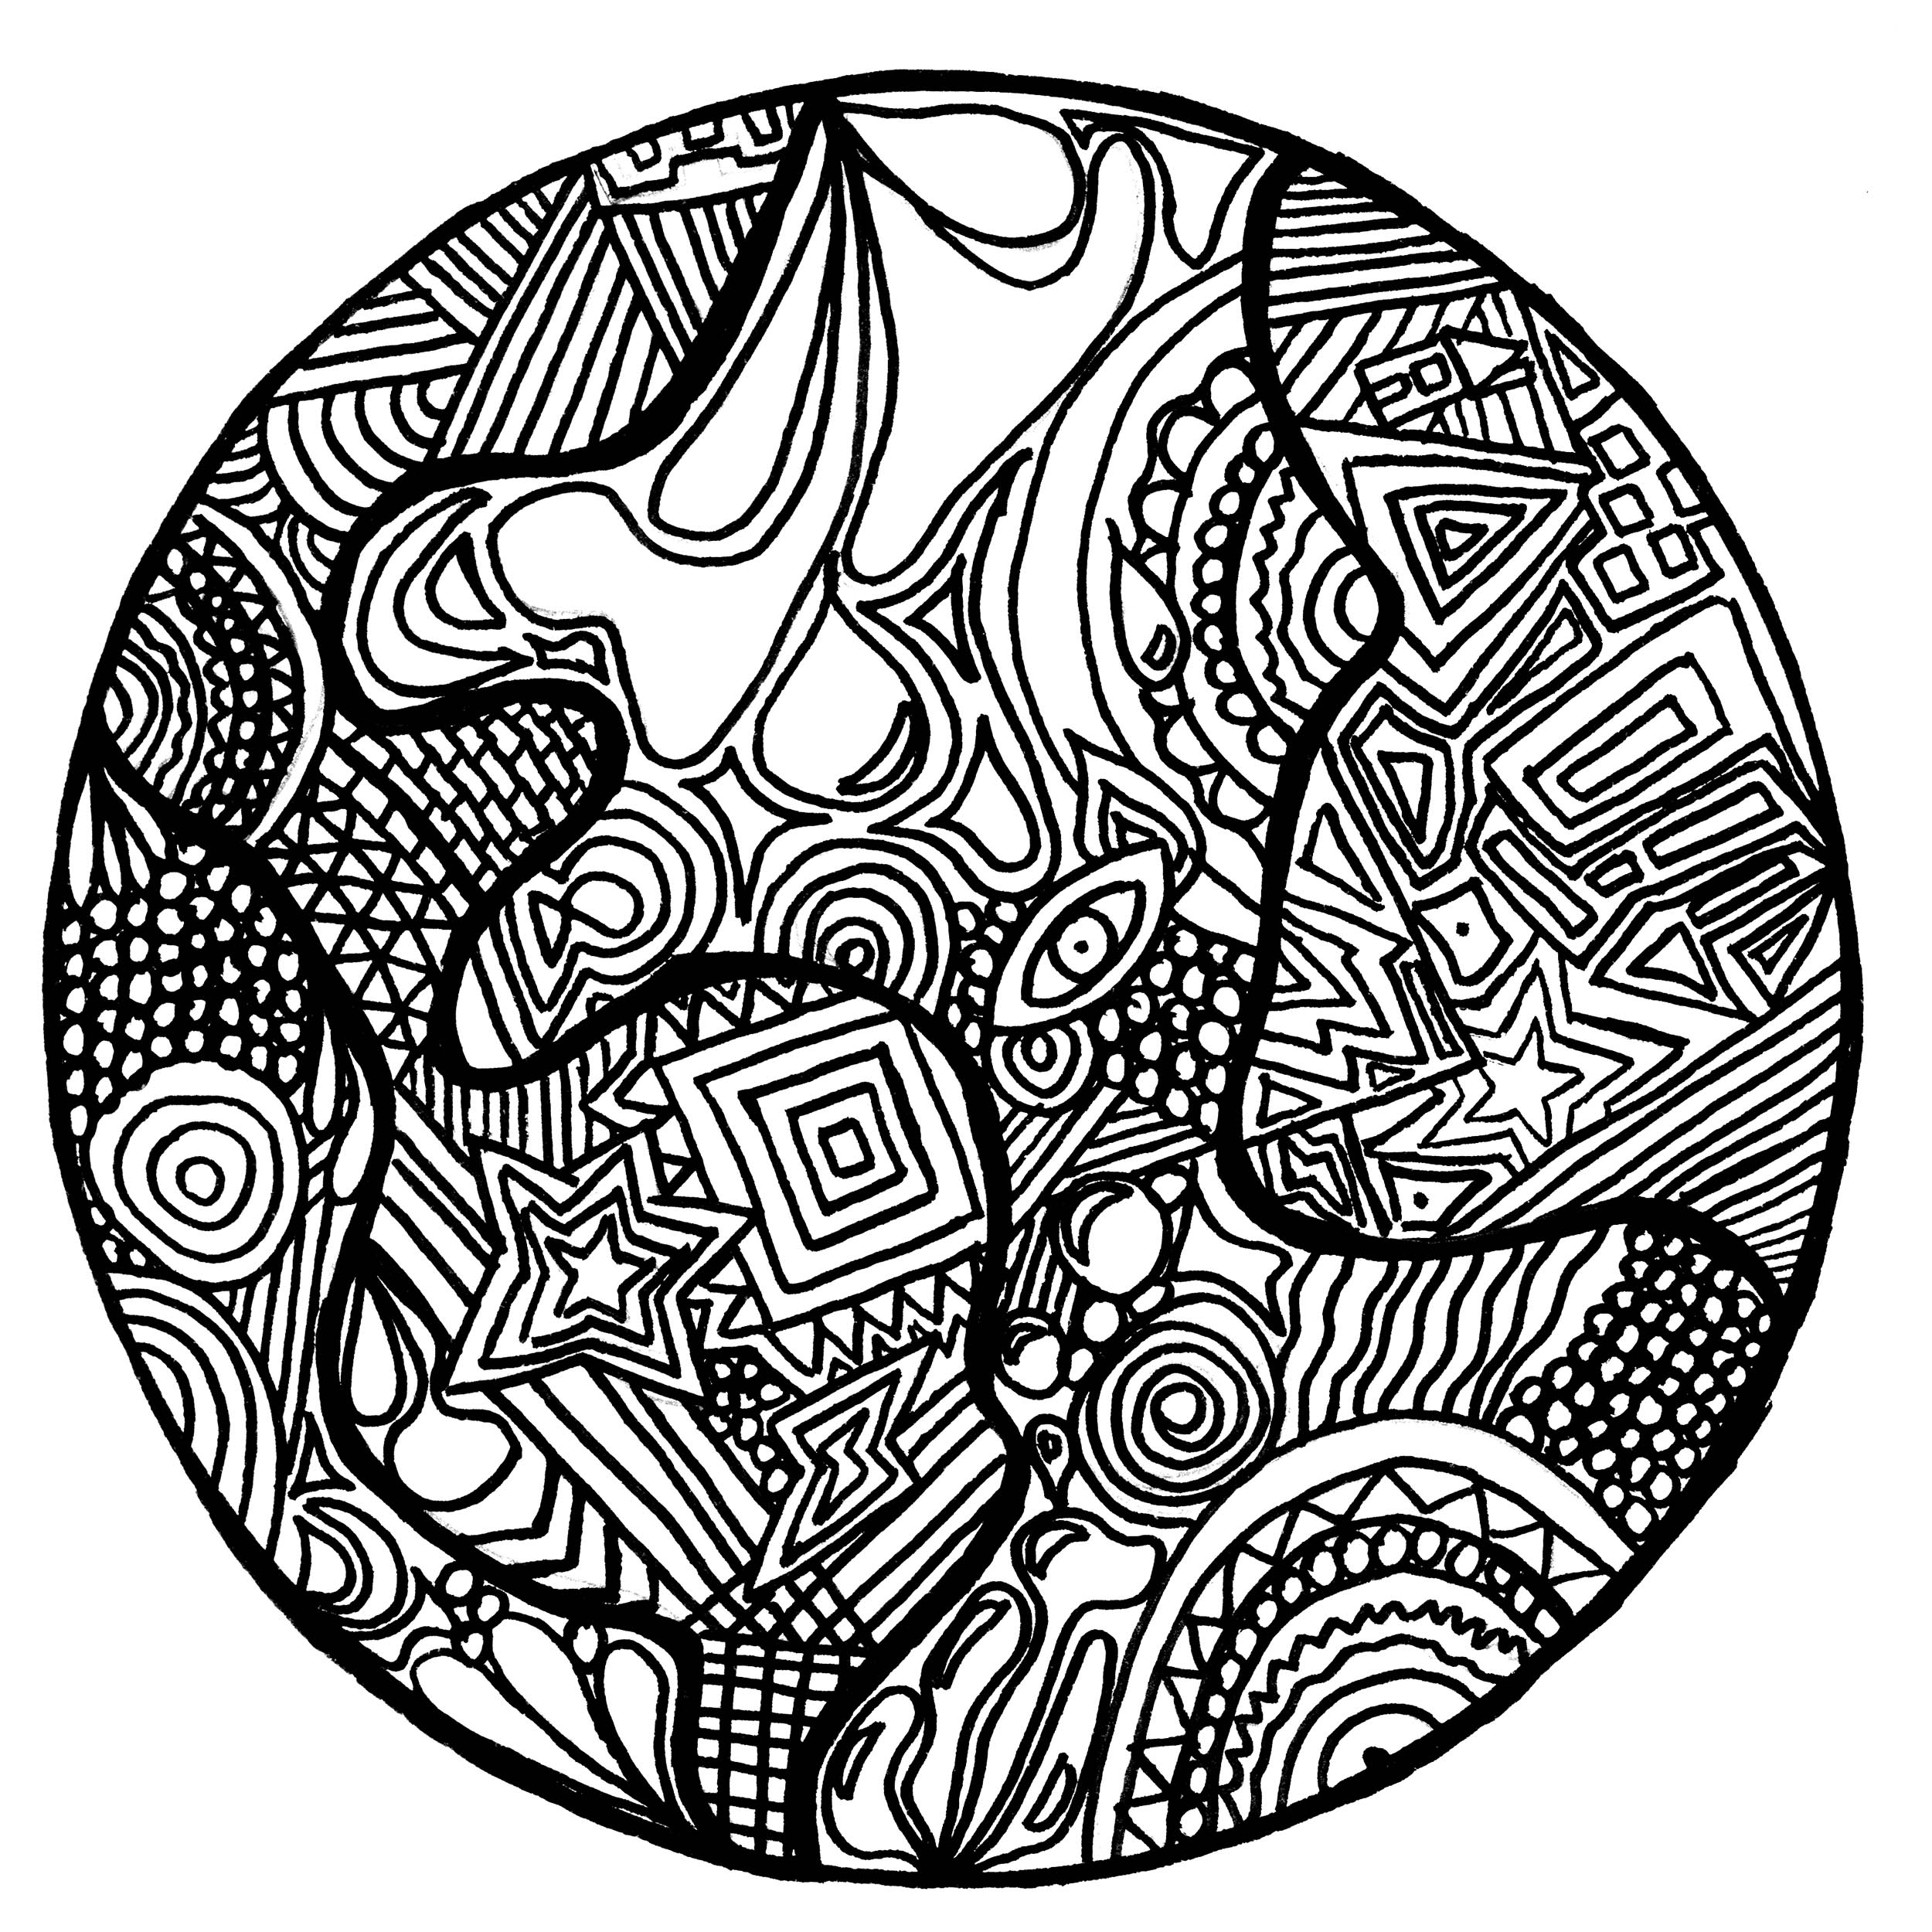 coloring pages zentangle zentangle to download for free zentangle kids coloring pages coloring pages zentangle